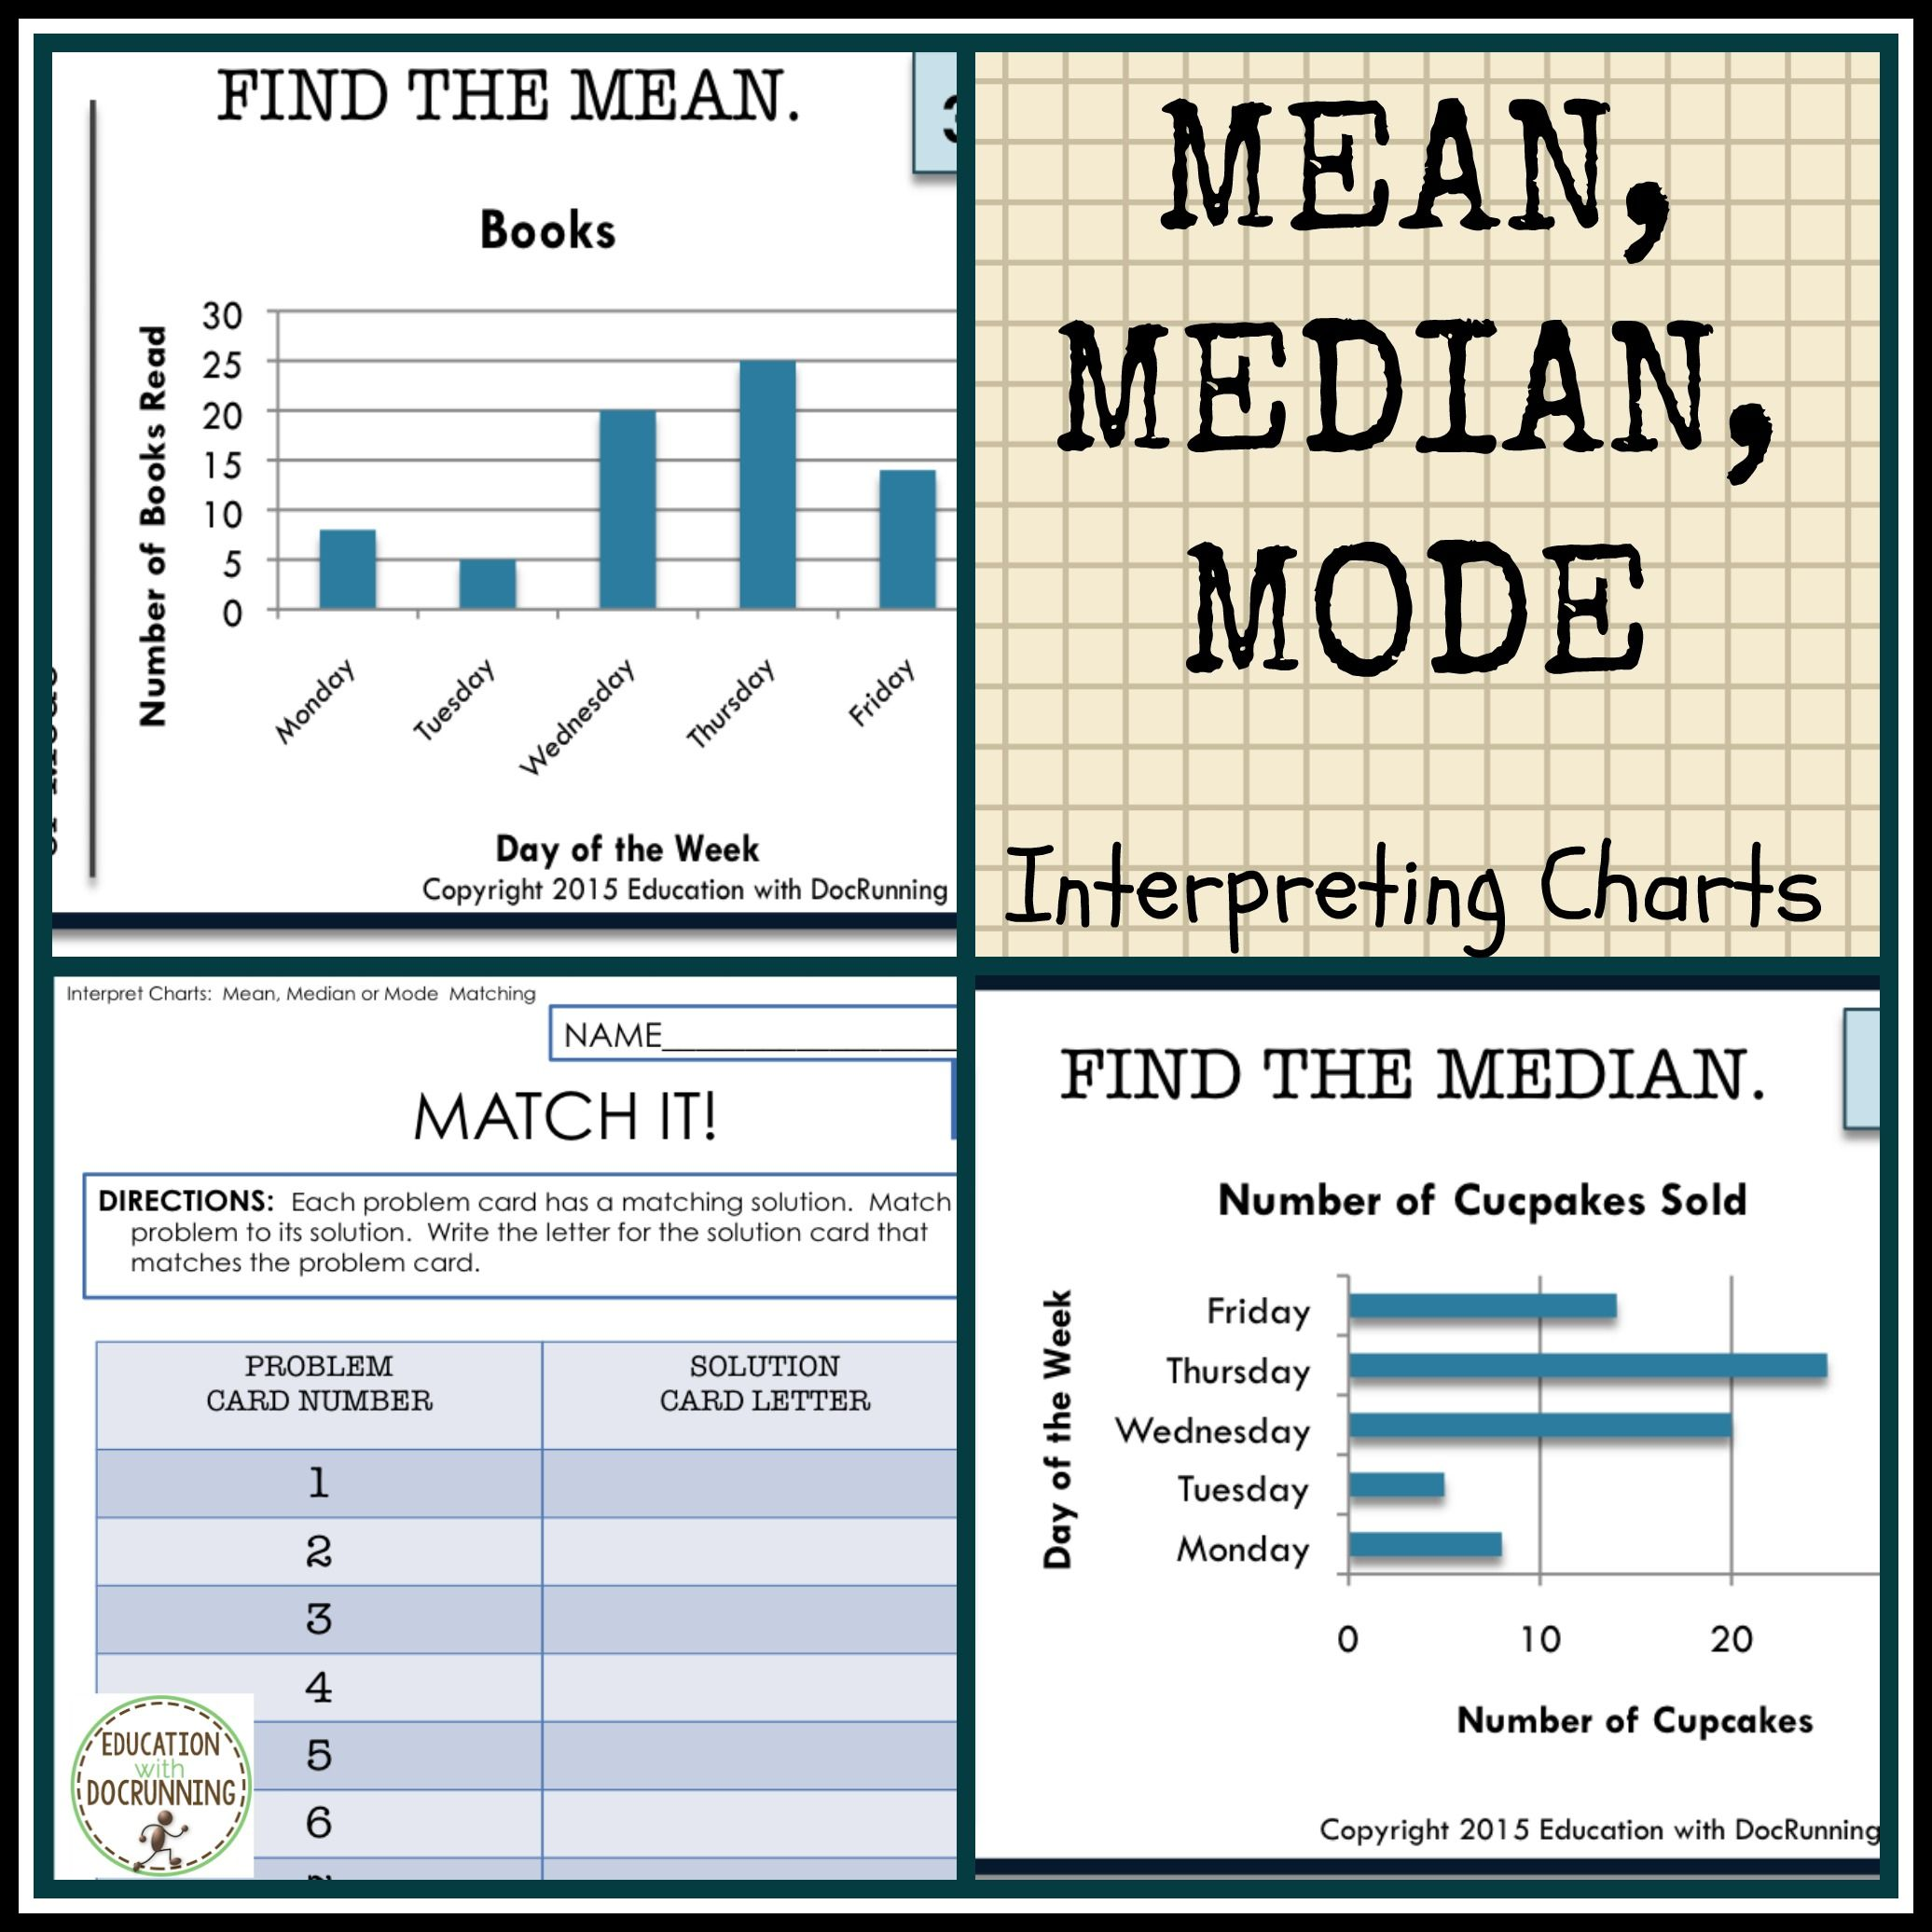 Interpret Charts With Mean Median And Mode Activity Task